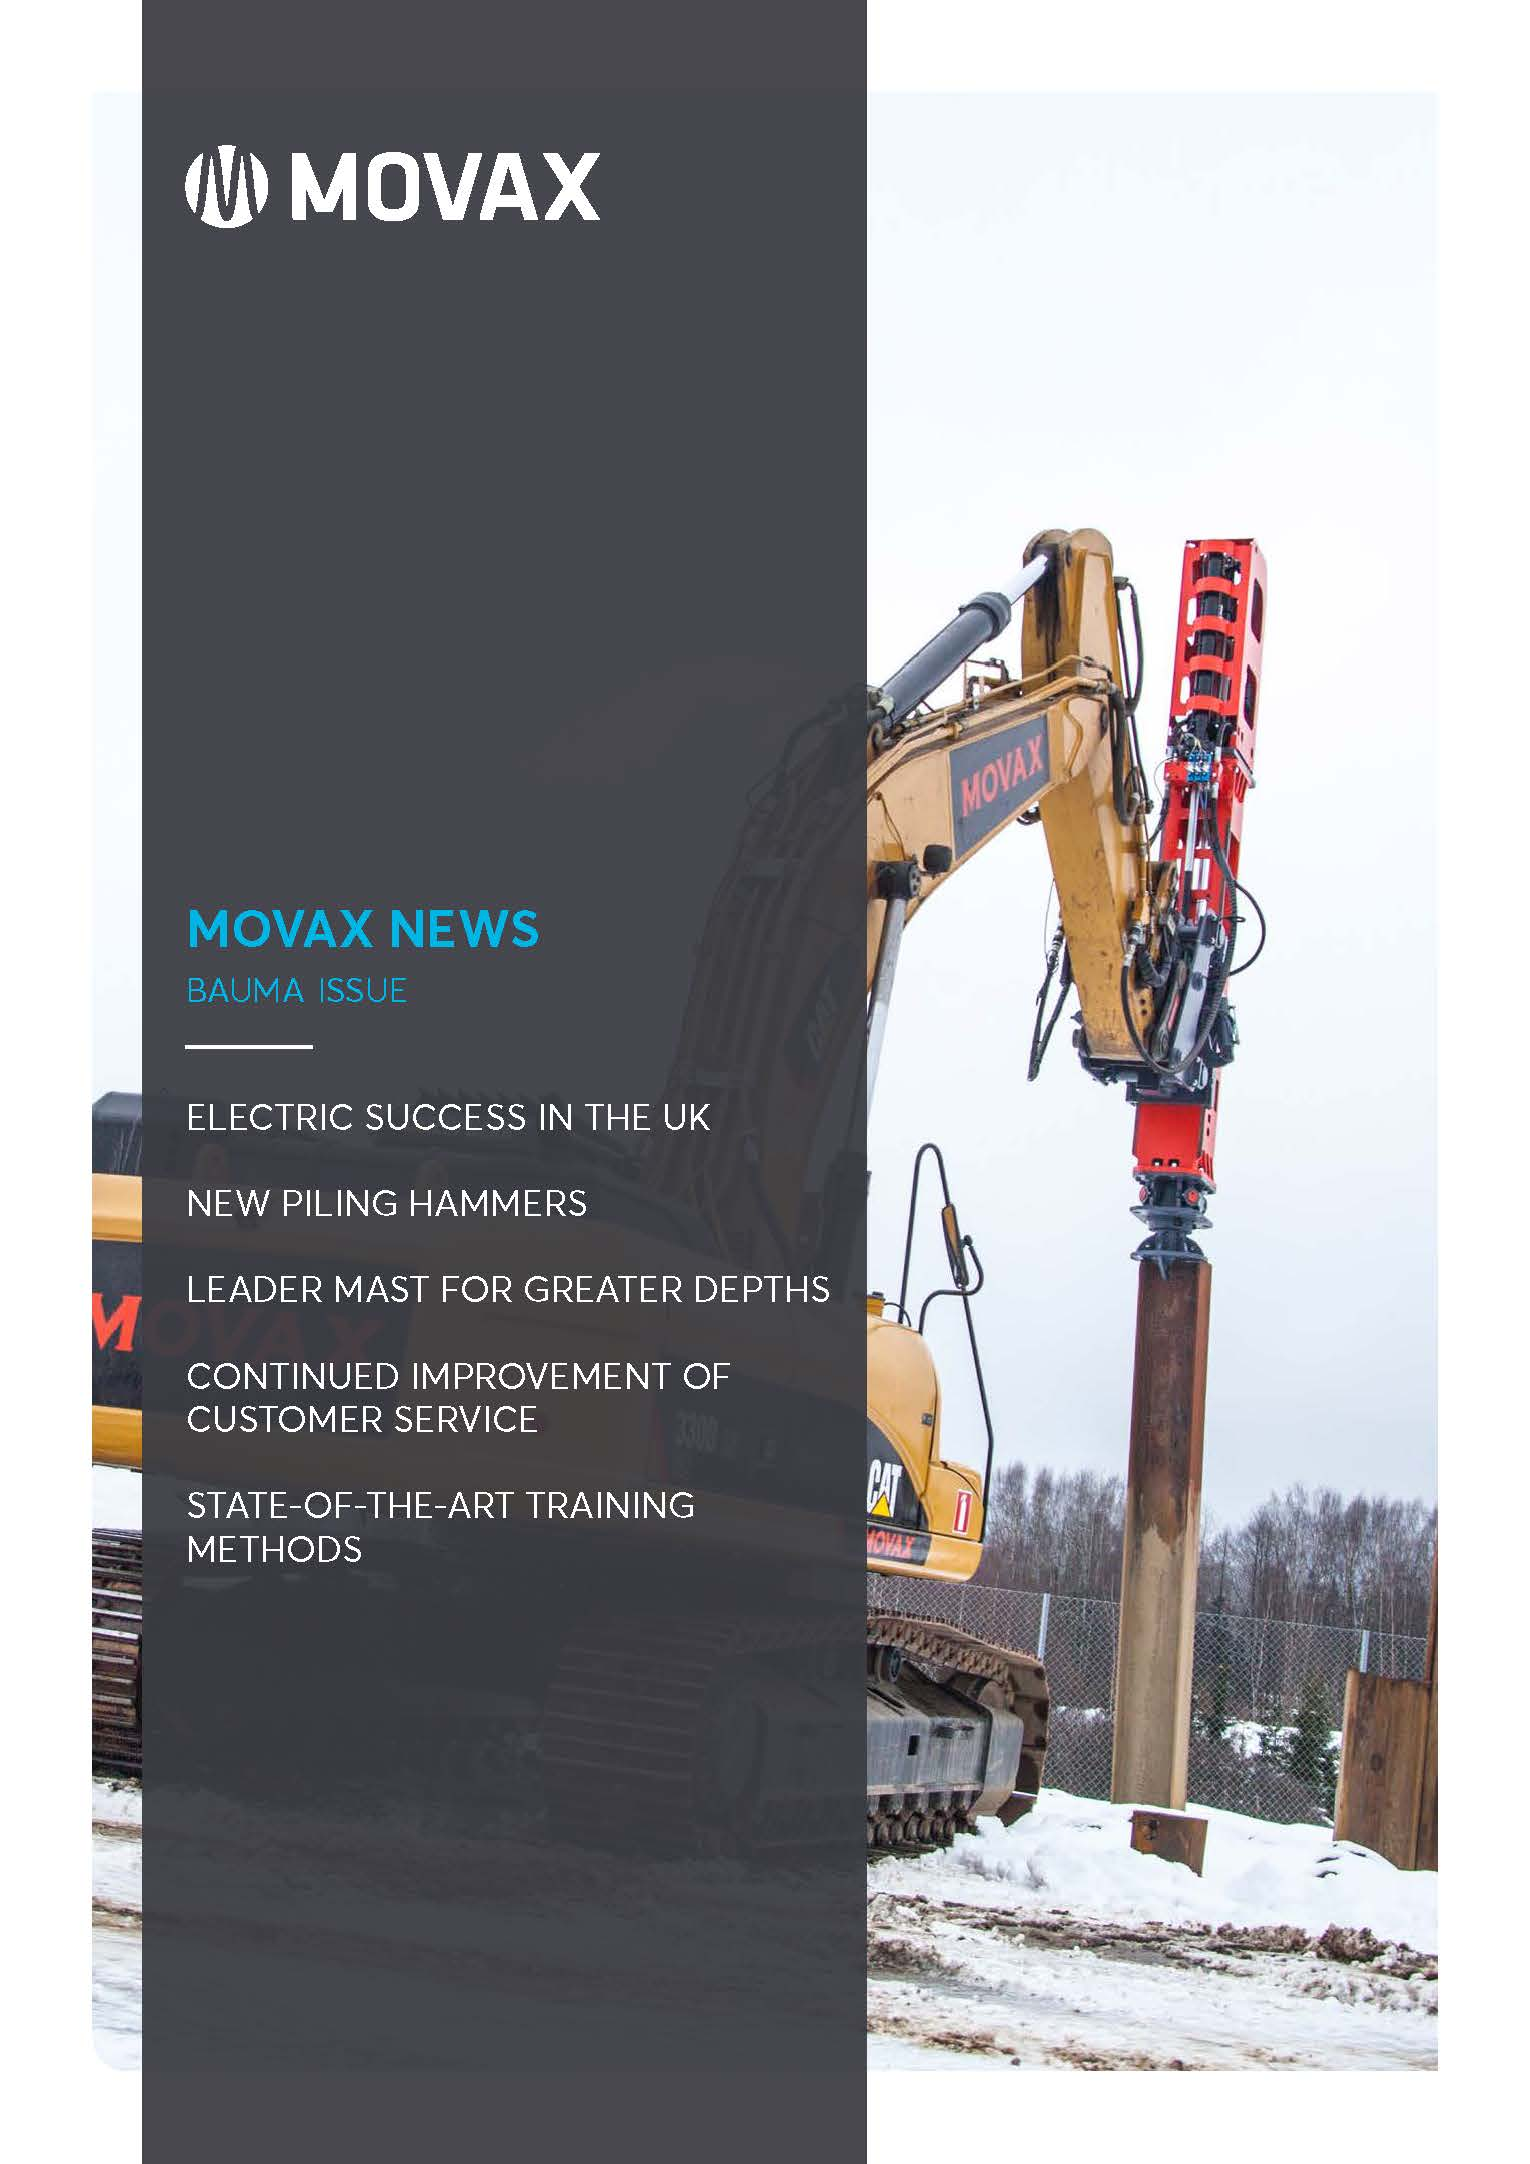 Movax News Bauma issue